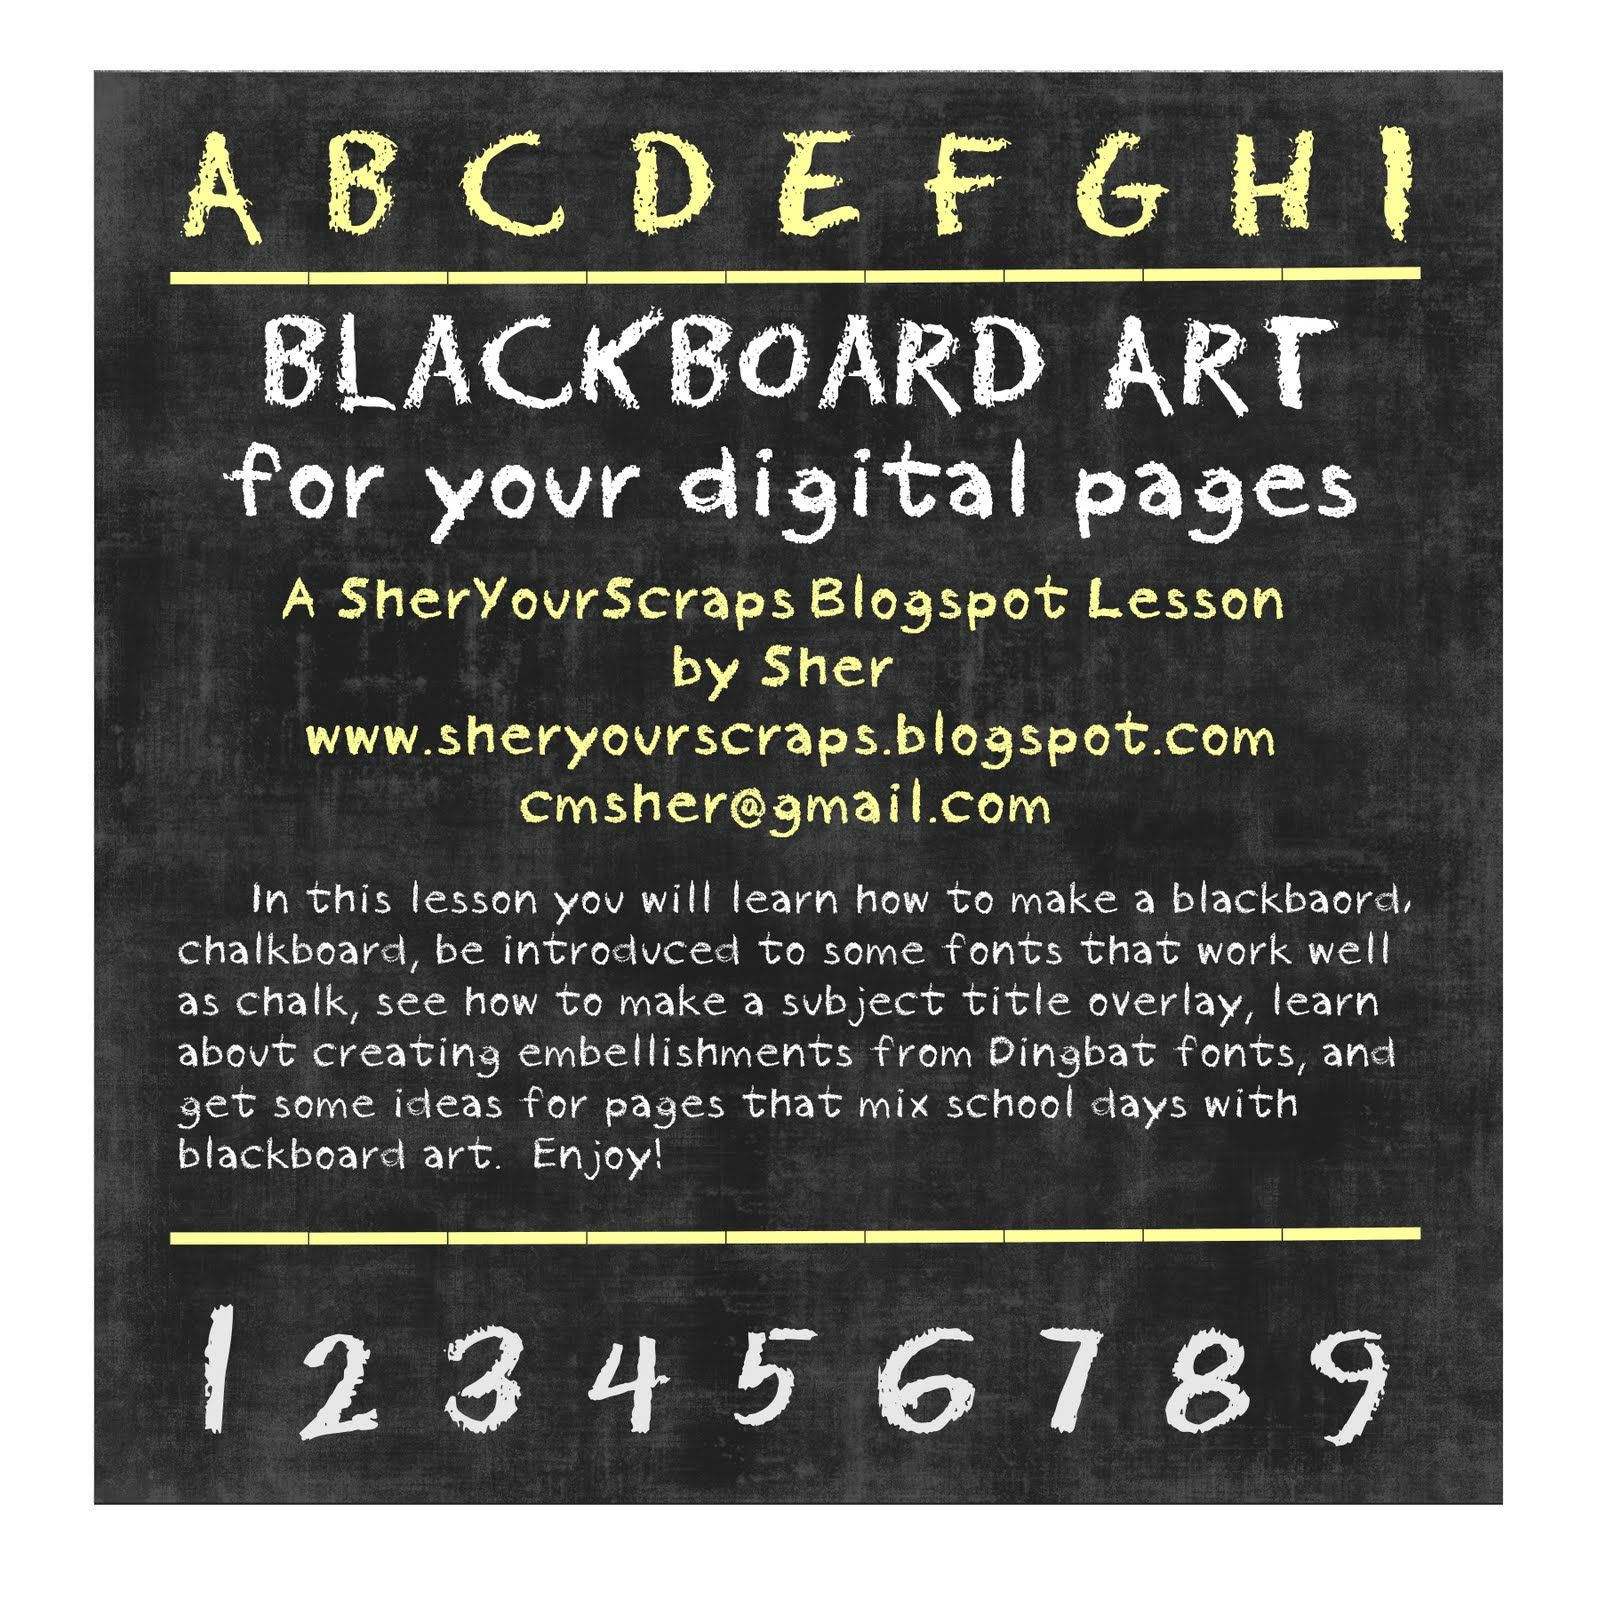 Sher Your Scraps: Blackboard Art for Digital Pages